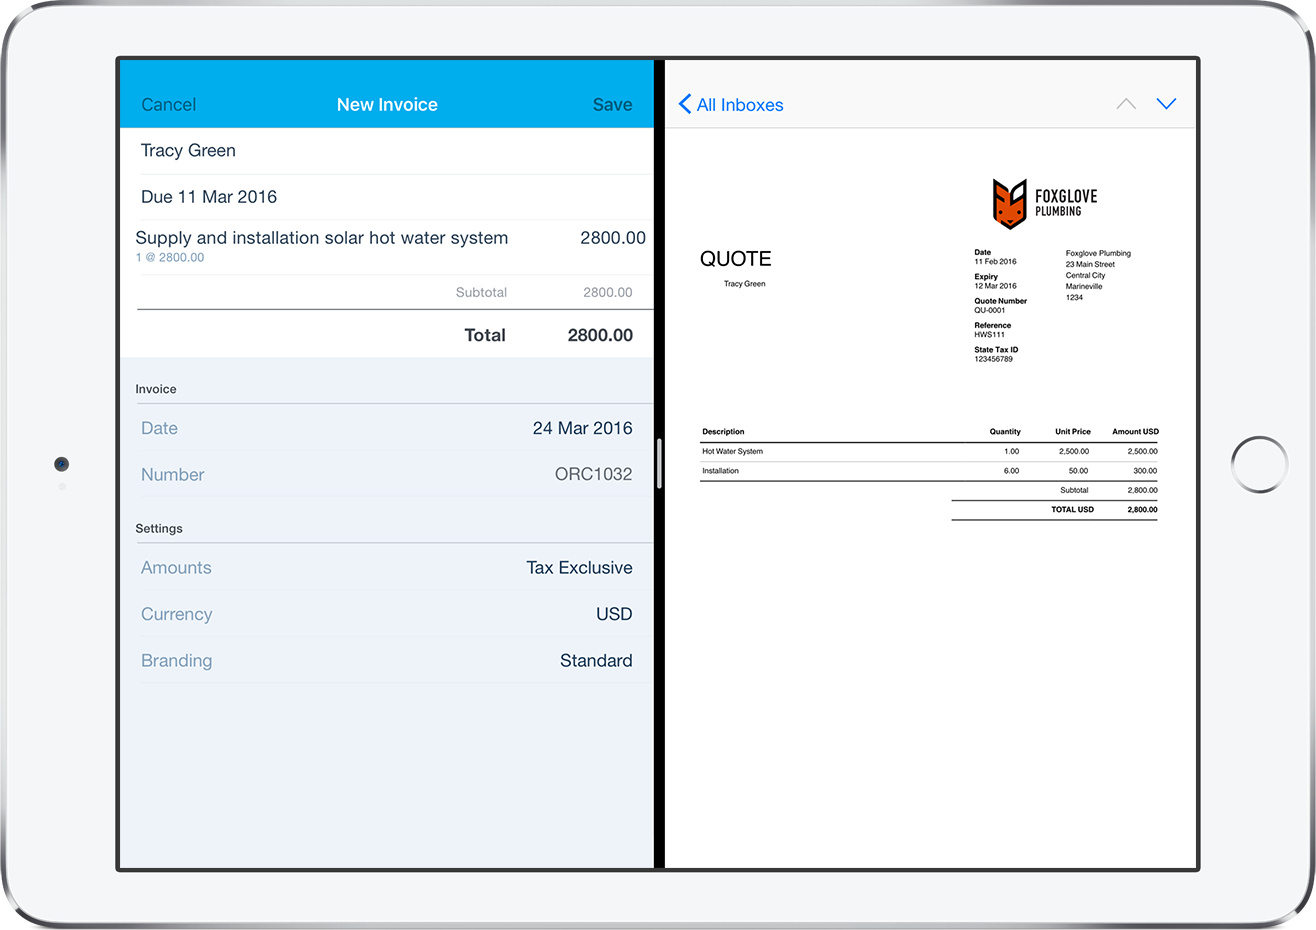 ipad split screen with xero